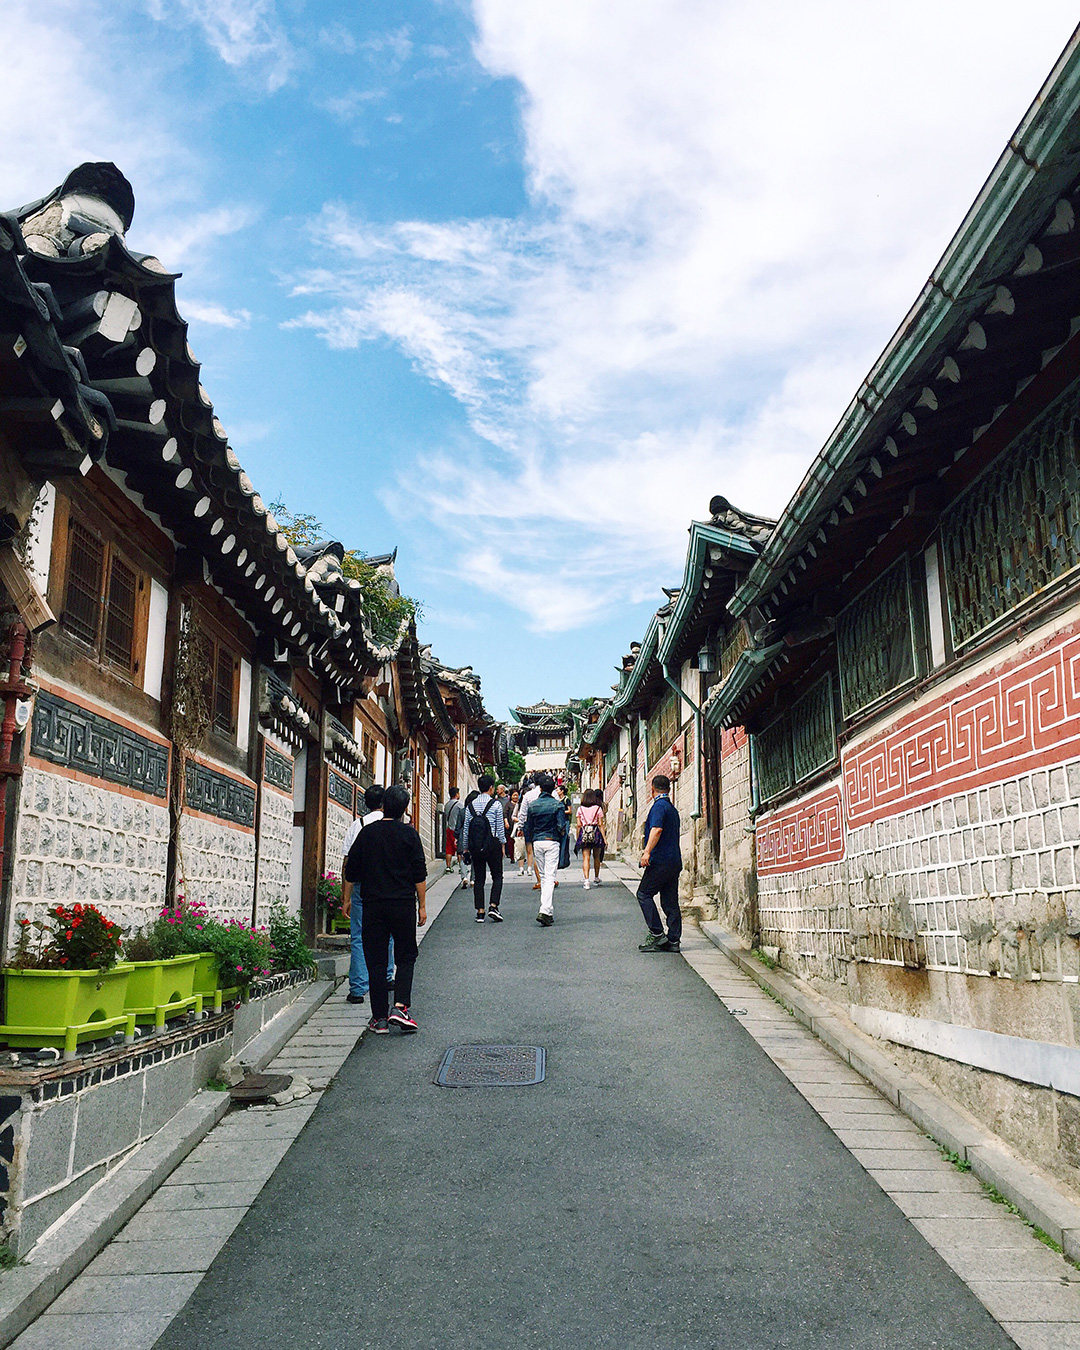 Row after row of traditional Korean homes called hanok.